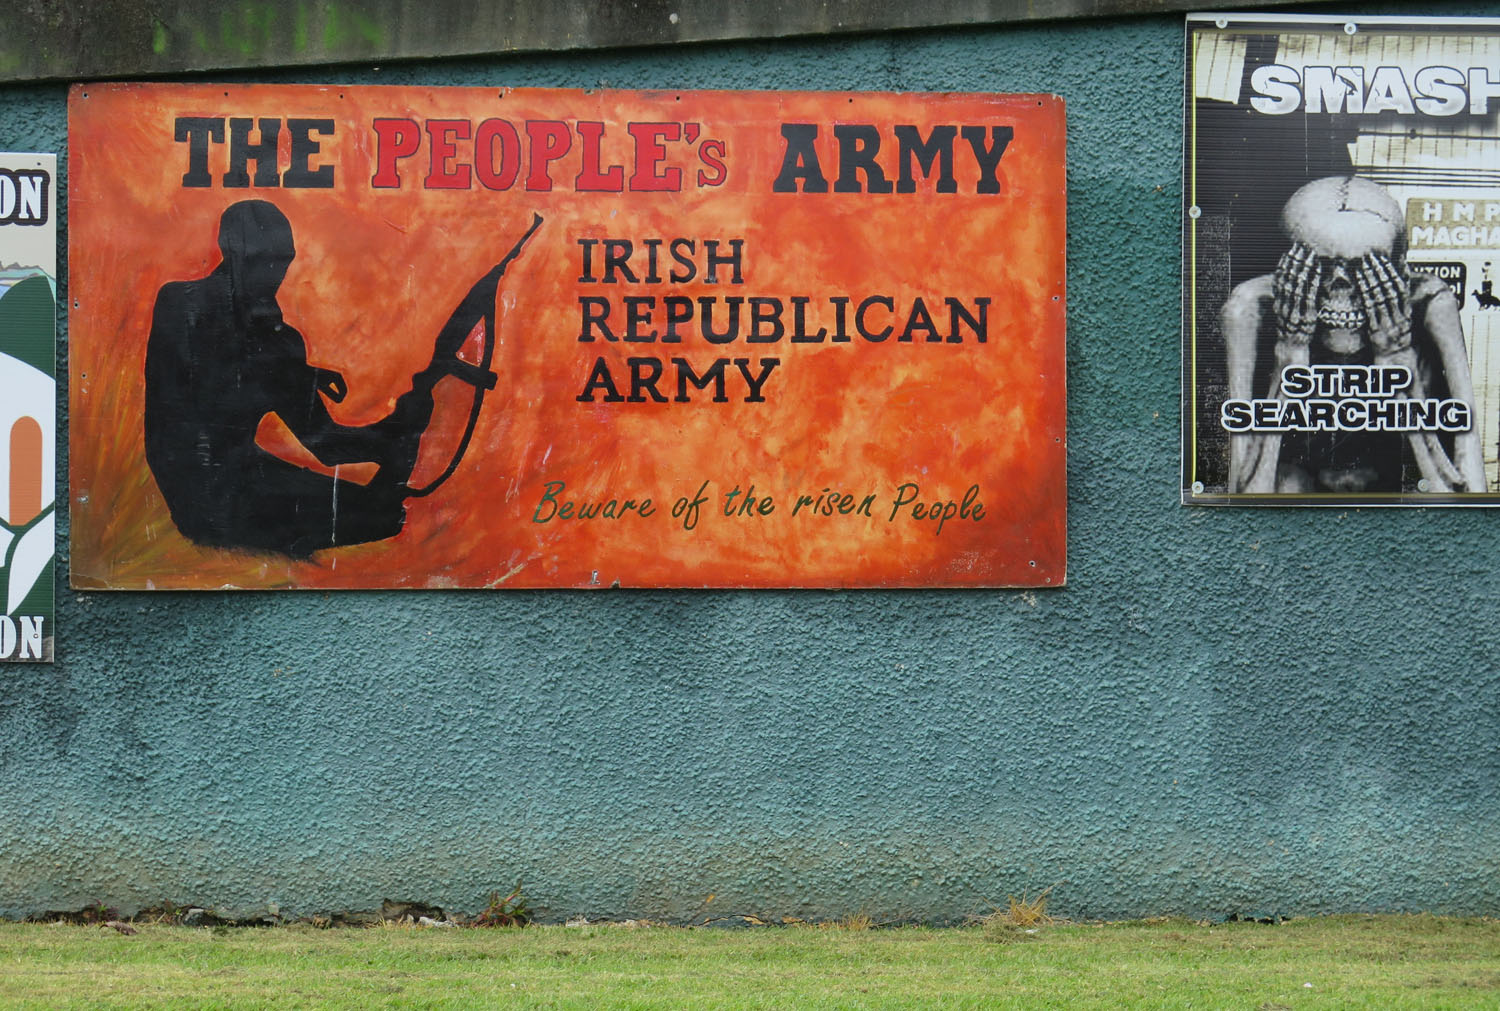 Northern-Ireland-Derry-Londonderry-The-Peoples-Army